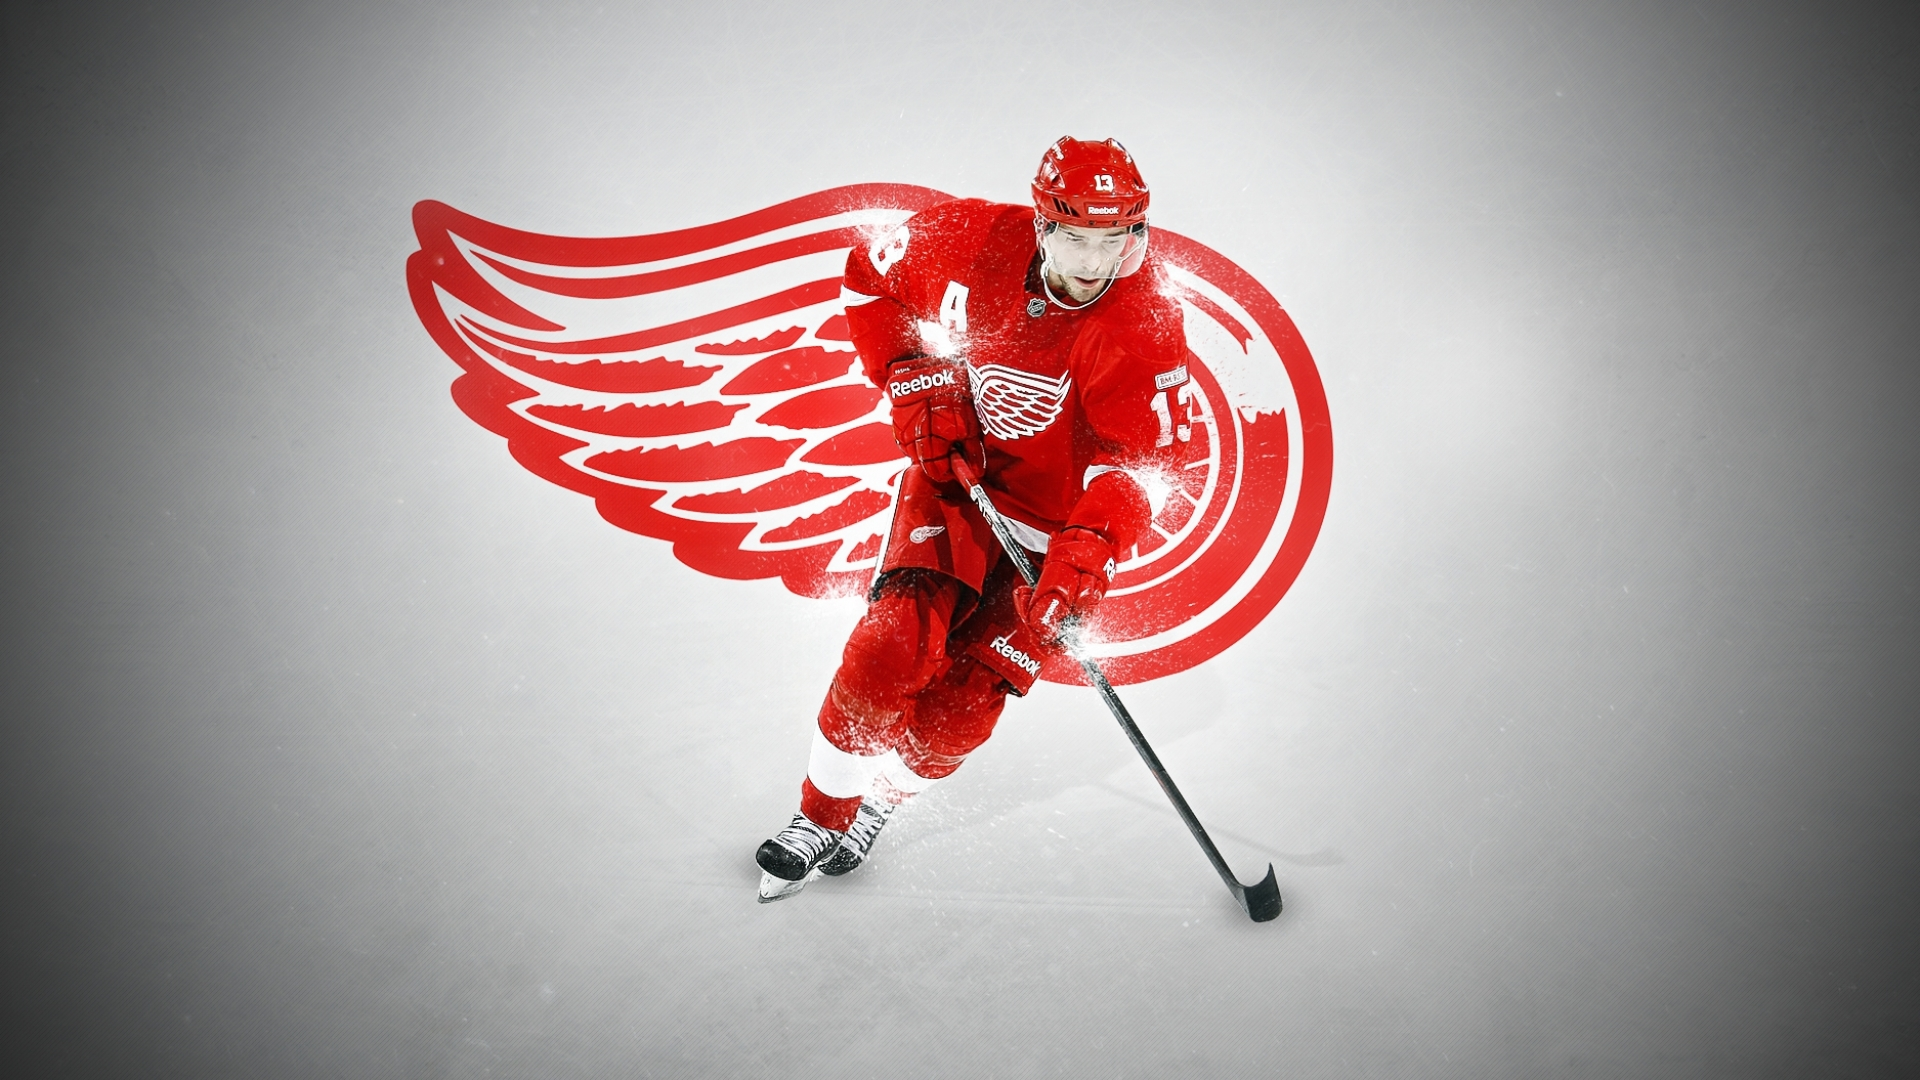 Best Hockey player Pavel Datsyuk wallpapers and images 1920x1080